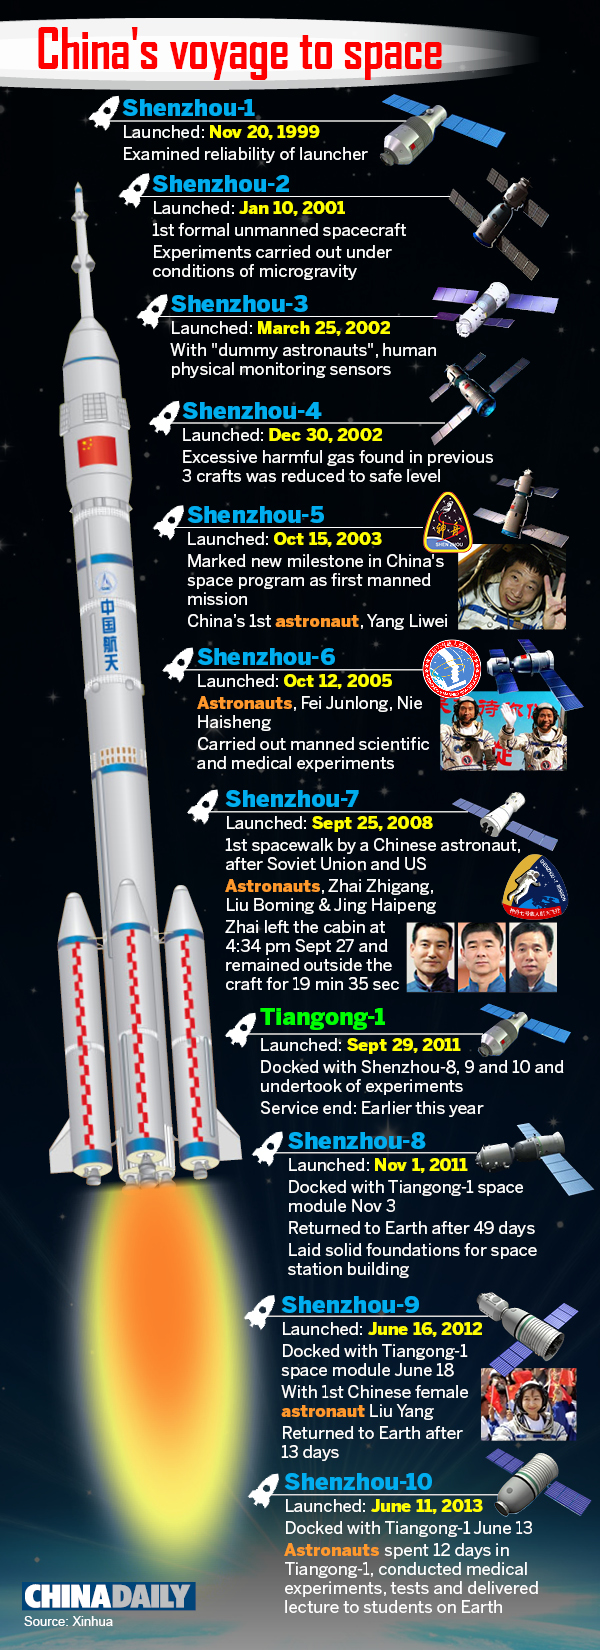 China's voyage to space